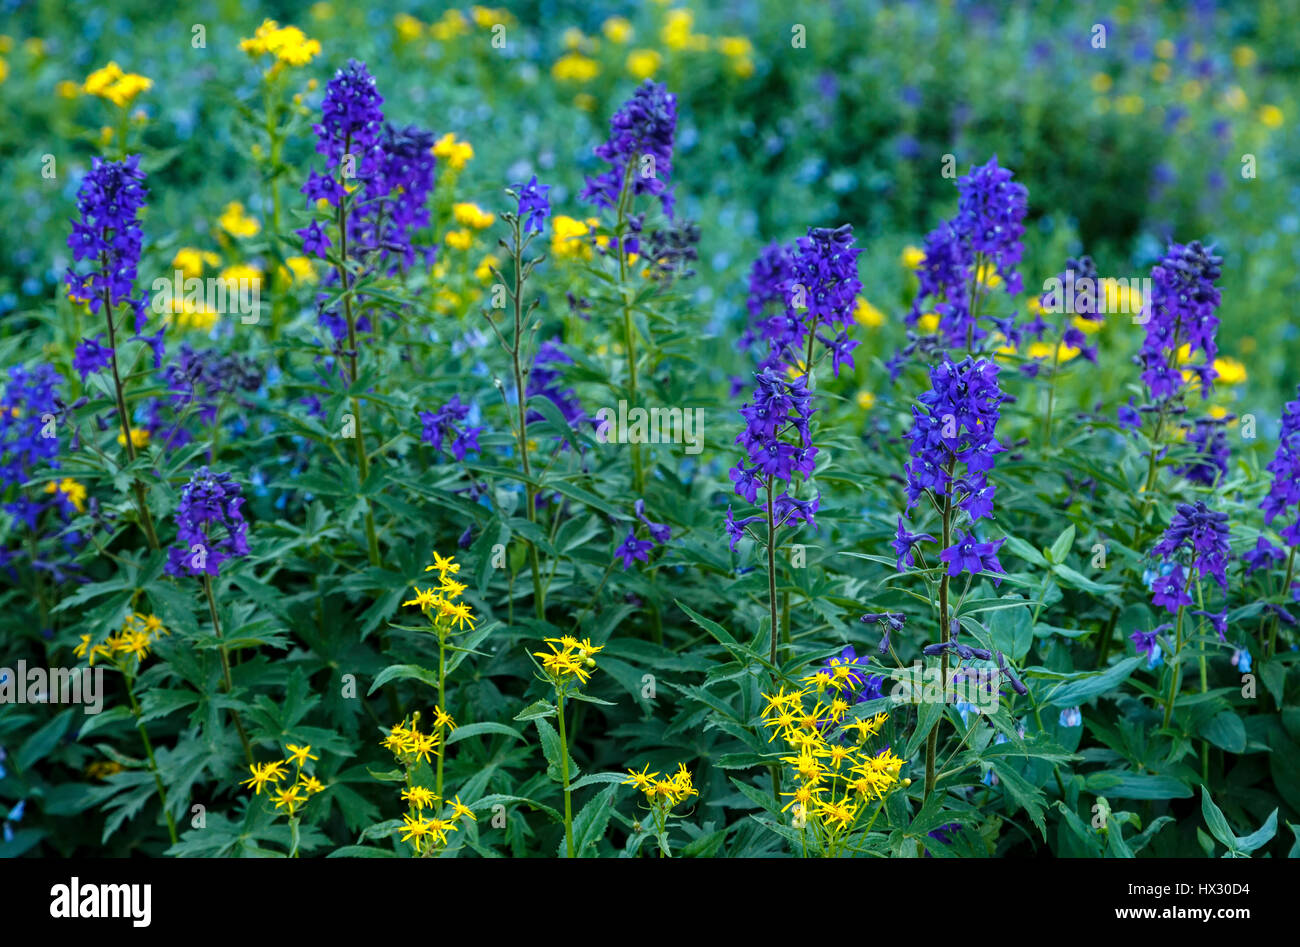 Wildflowers, Big Horn Gulch, San Juan Mountains, near Silverton, Colorado USA - Stock Image